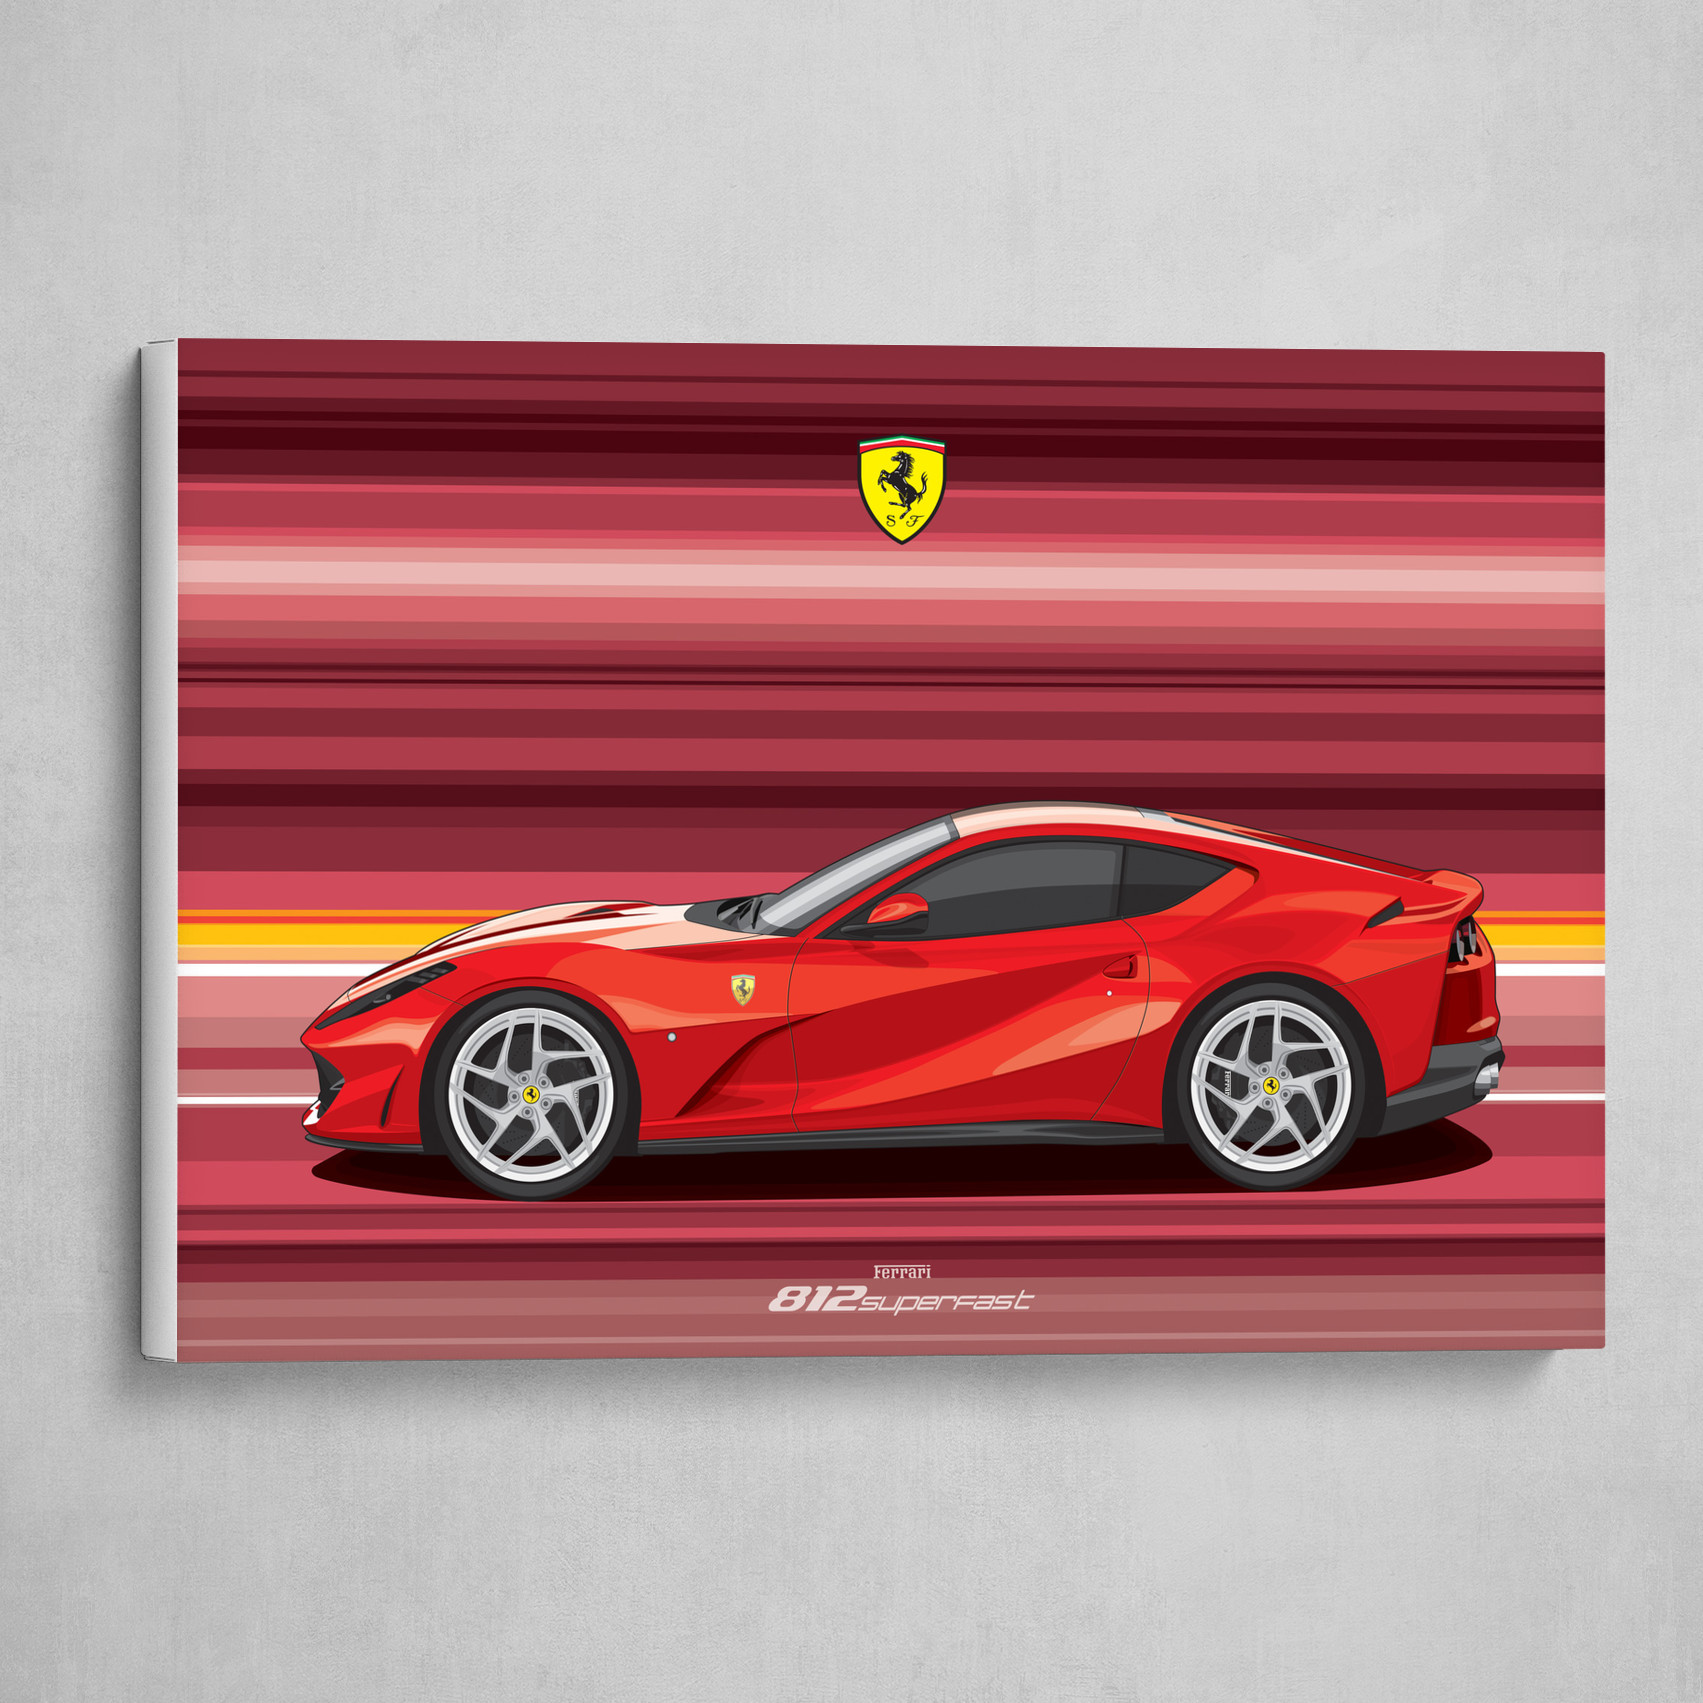 Ferrari 812 Superfast Car Flat Vector Art Poster By Srattha Nualsate